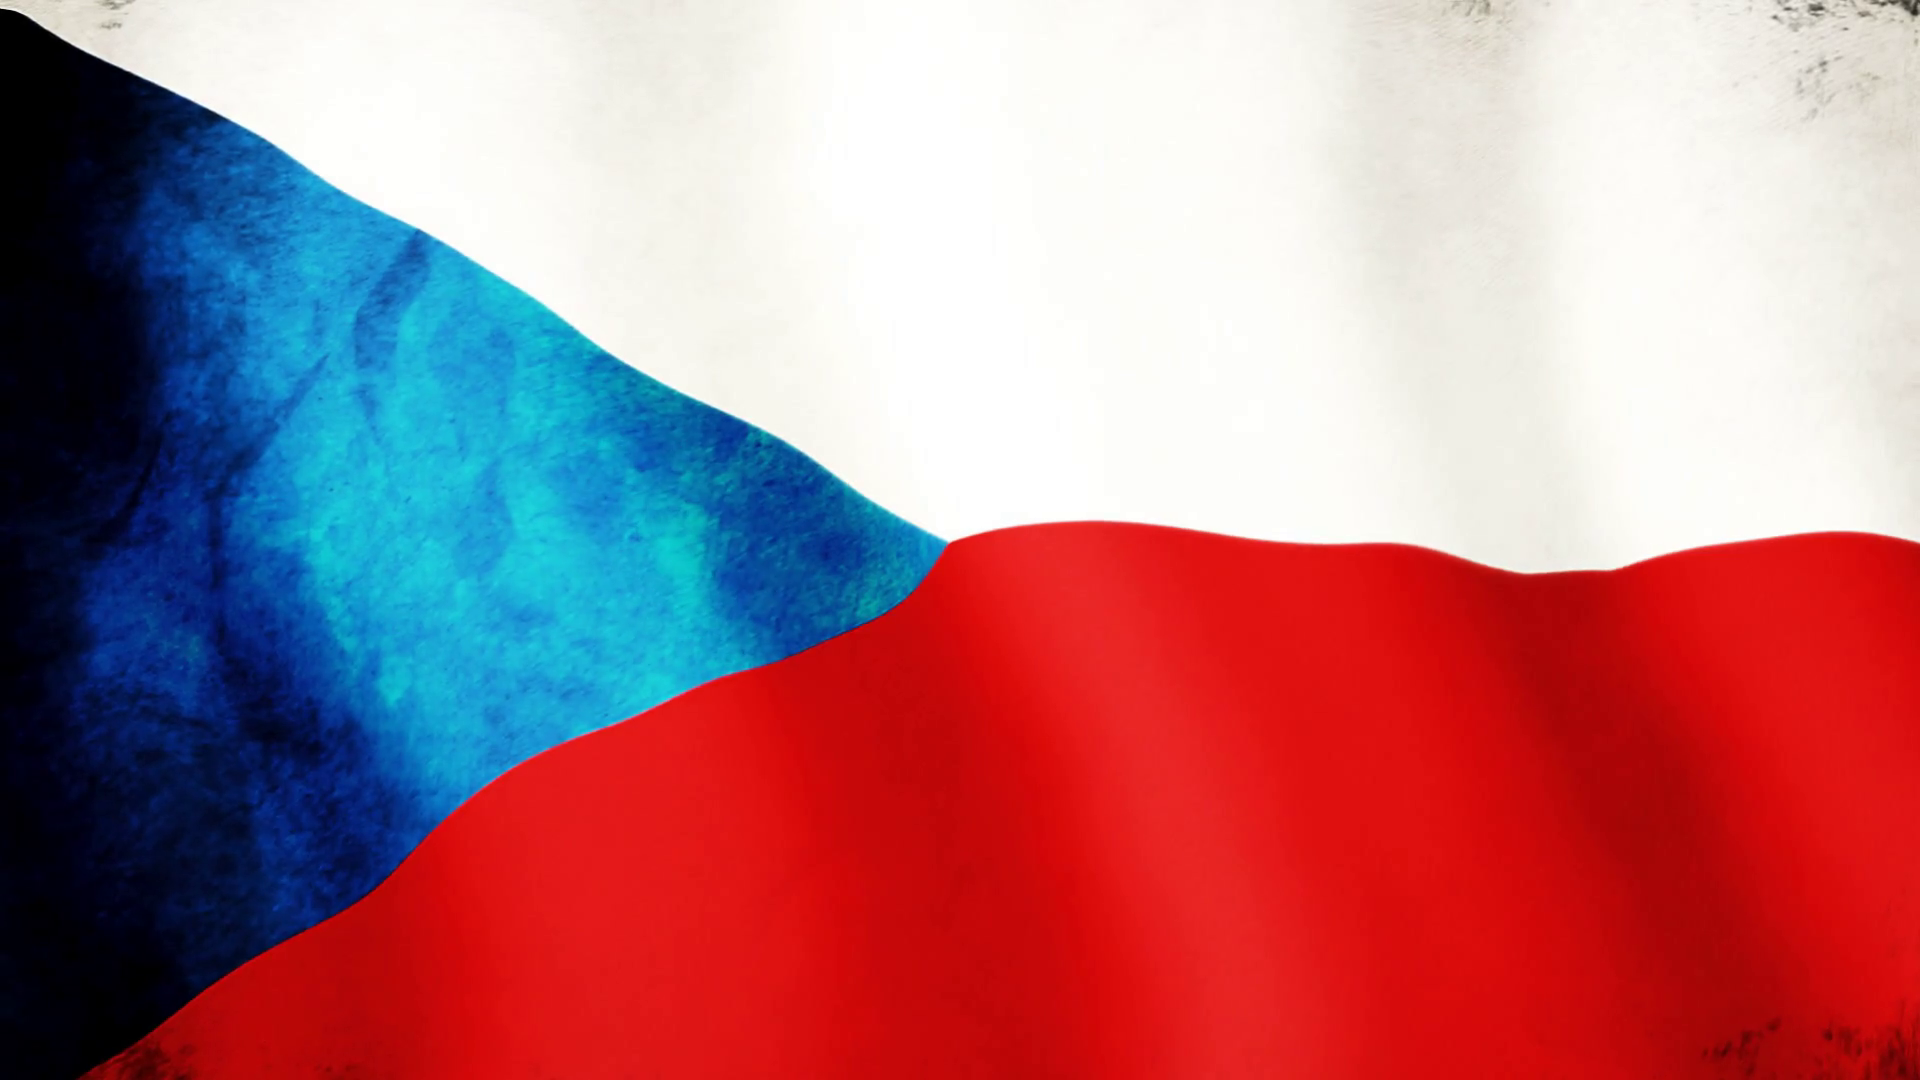 The Czech Republic Flag   Full HD 1920x1080   Shabby Motion 1920x1080